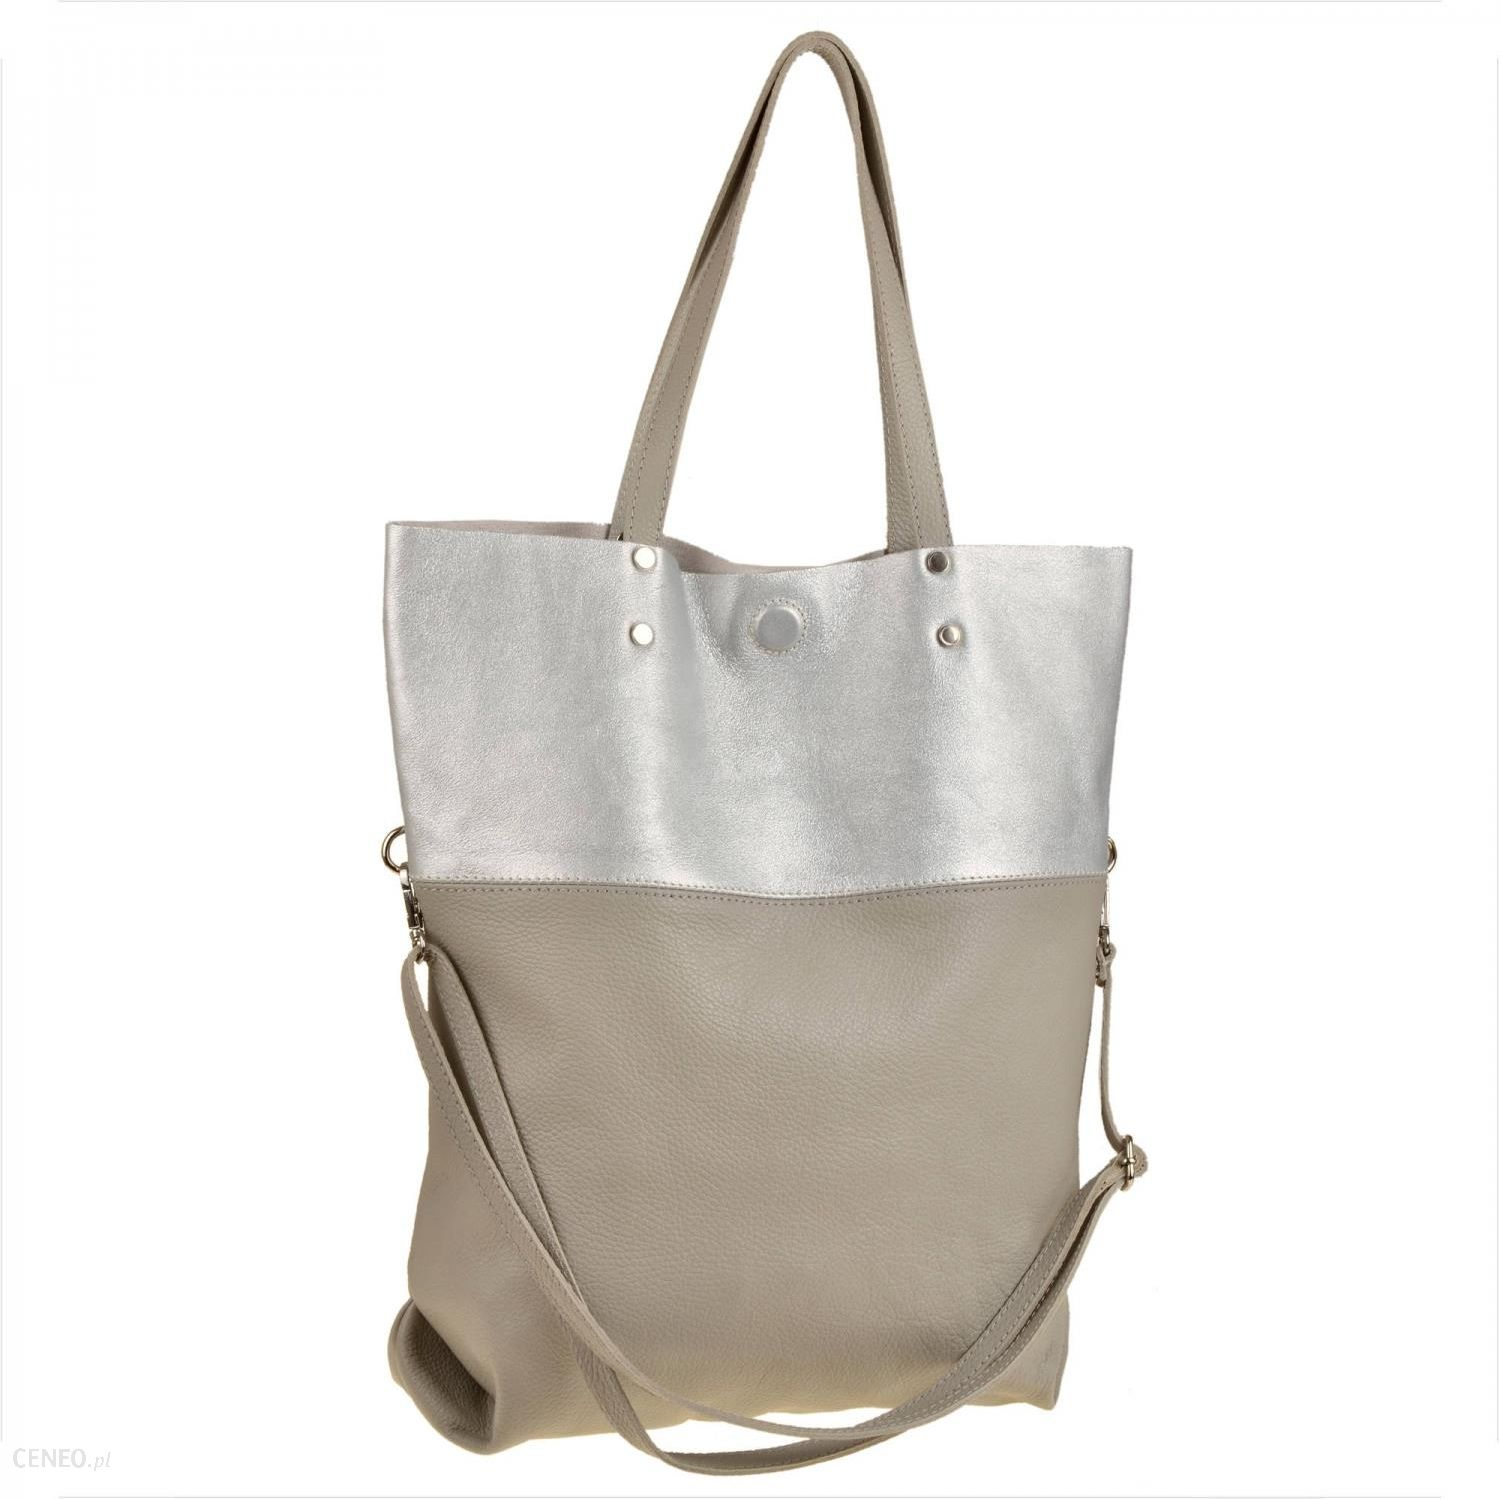 Genuine Leather Torba skórzana shopper bag popielato srebrna